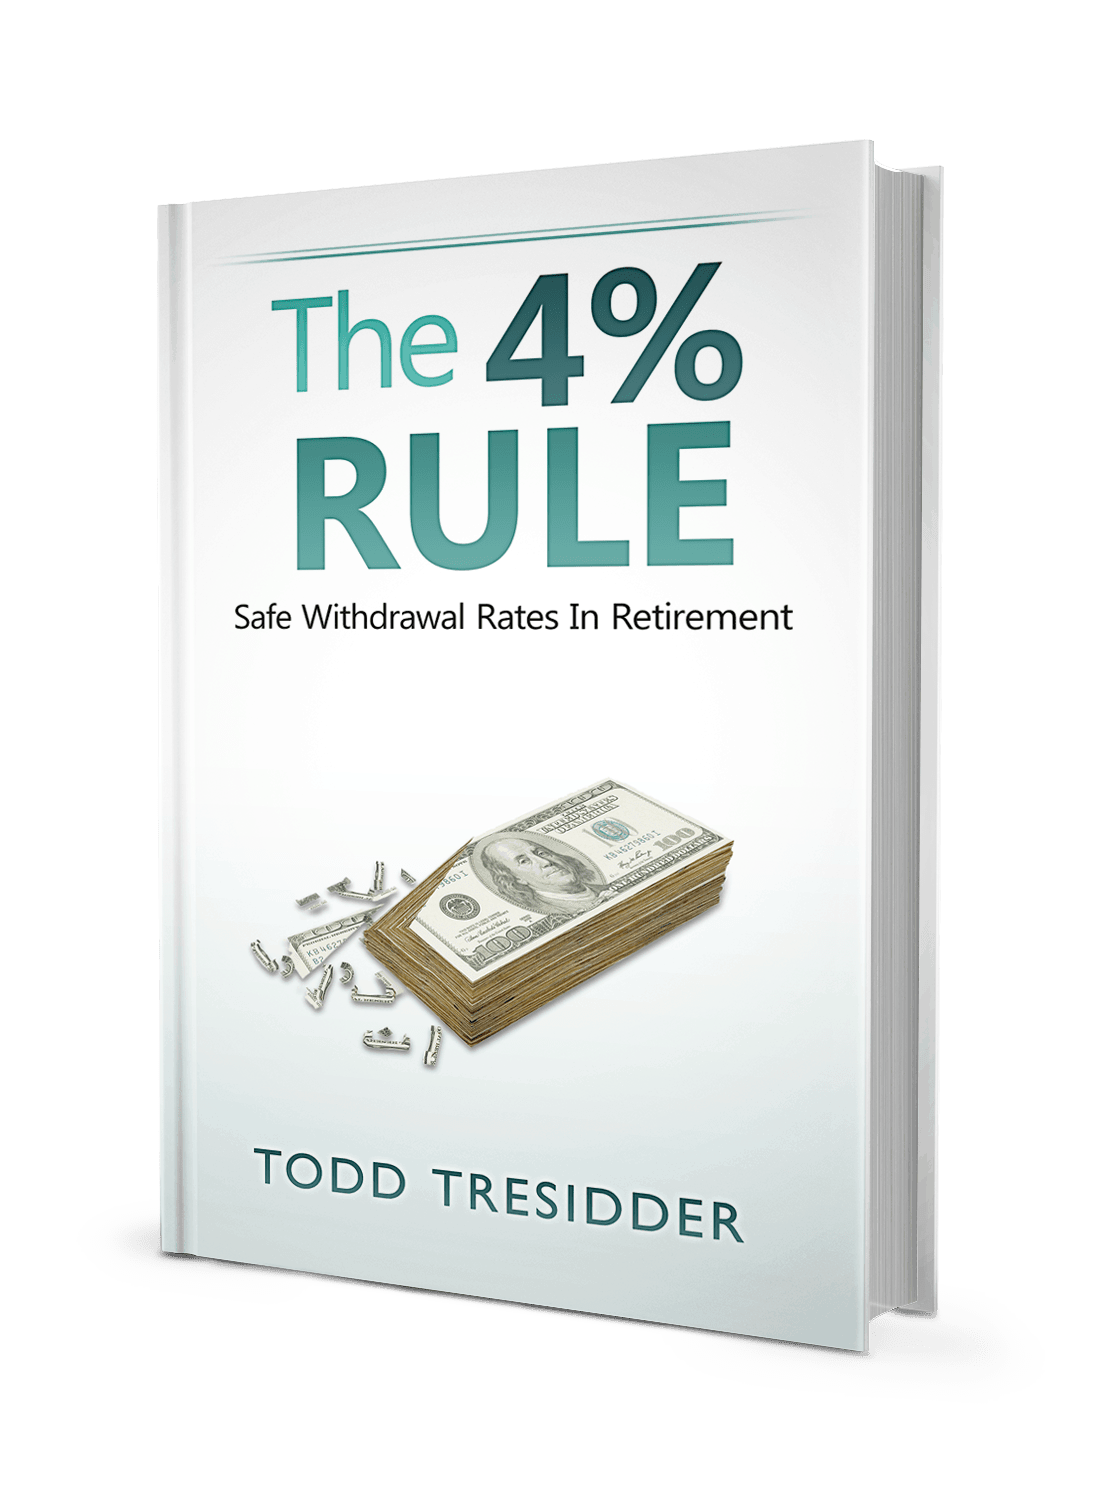 4 Rule Safe Withdrawal Rates In Retirement